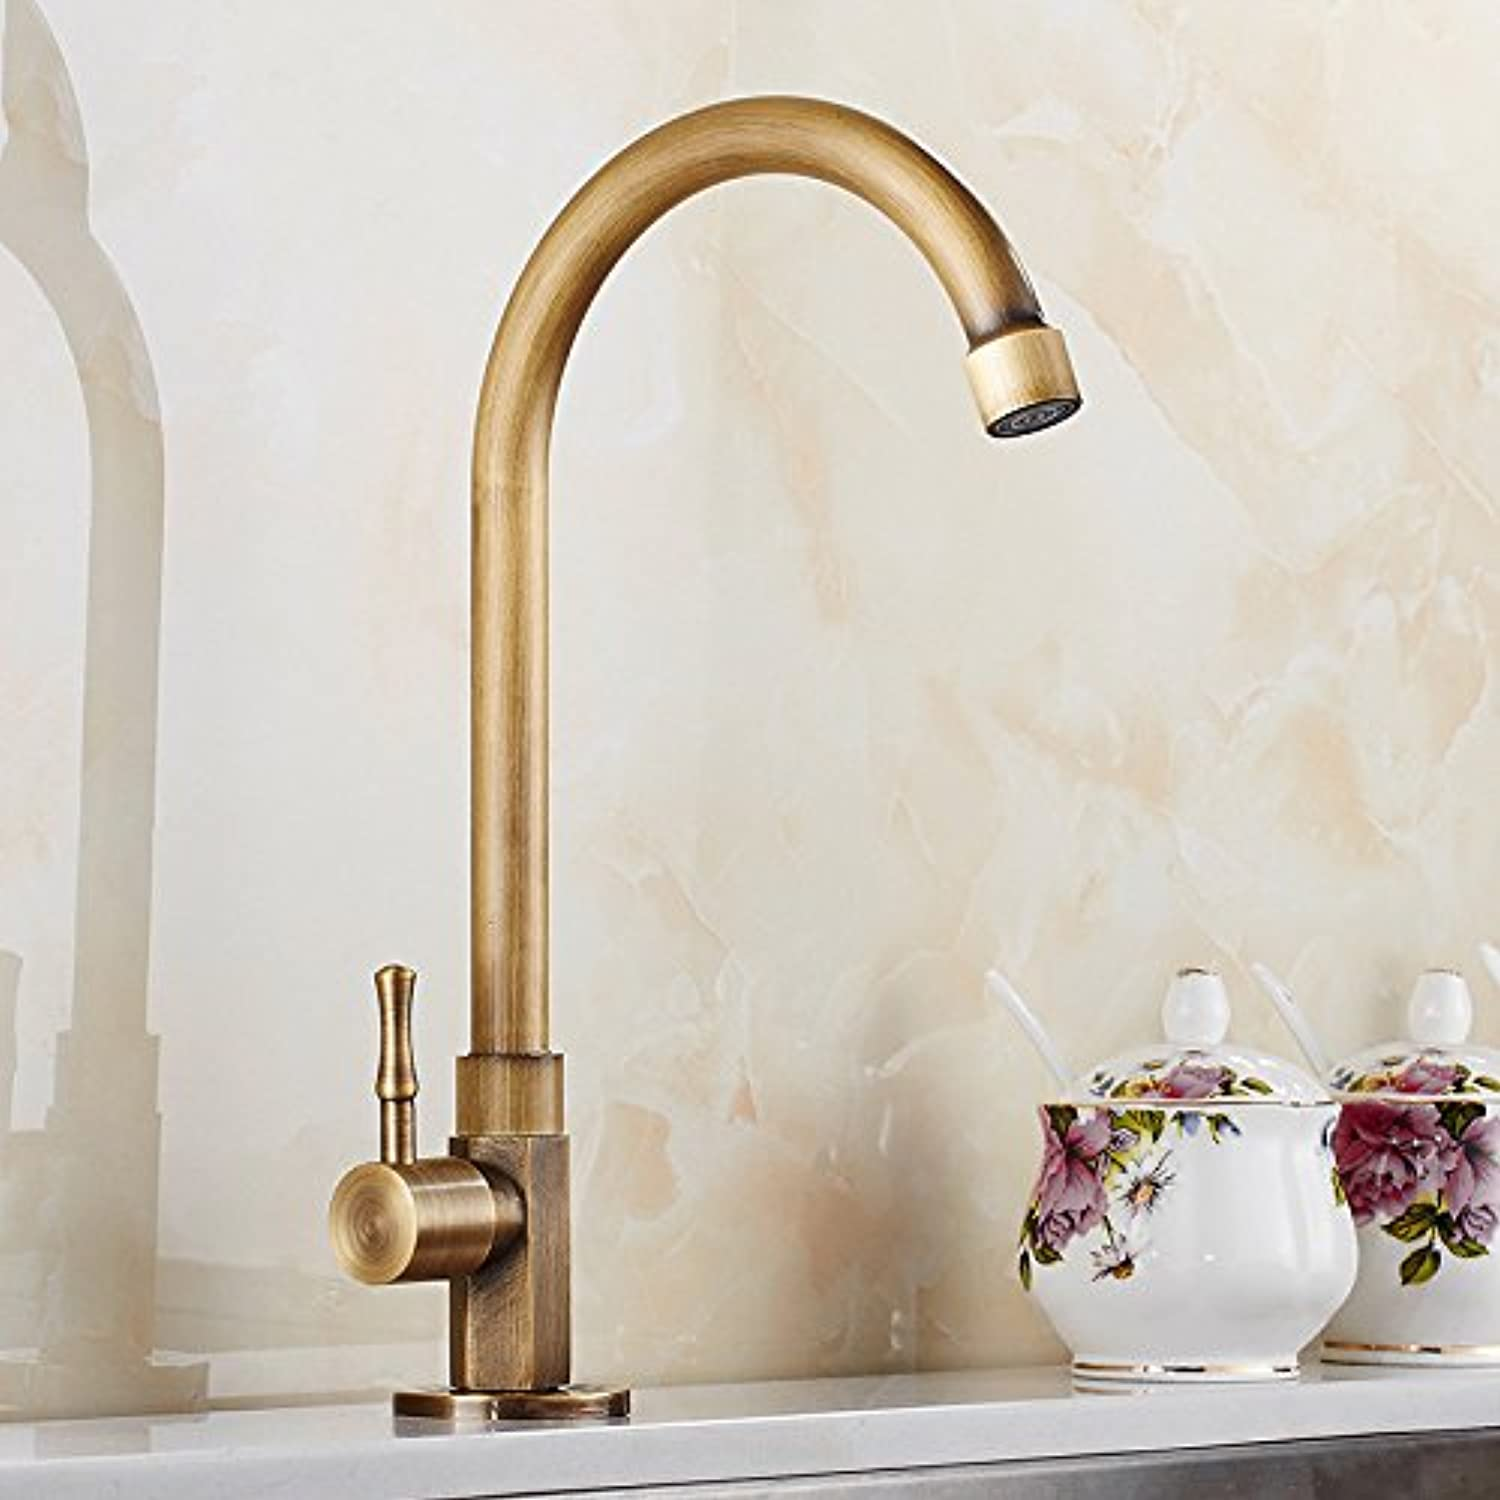 GFEI Antique greenical basin faucet copper redating European washbasin faucets